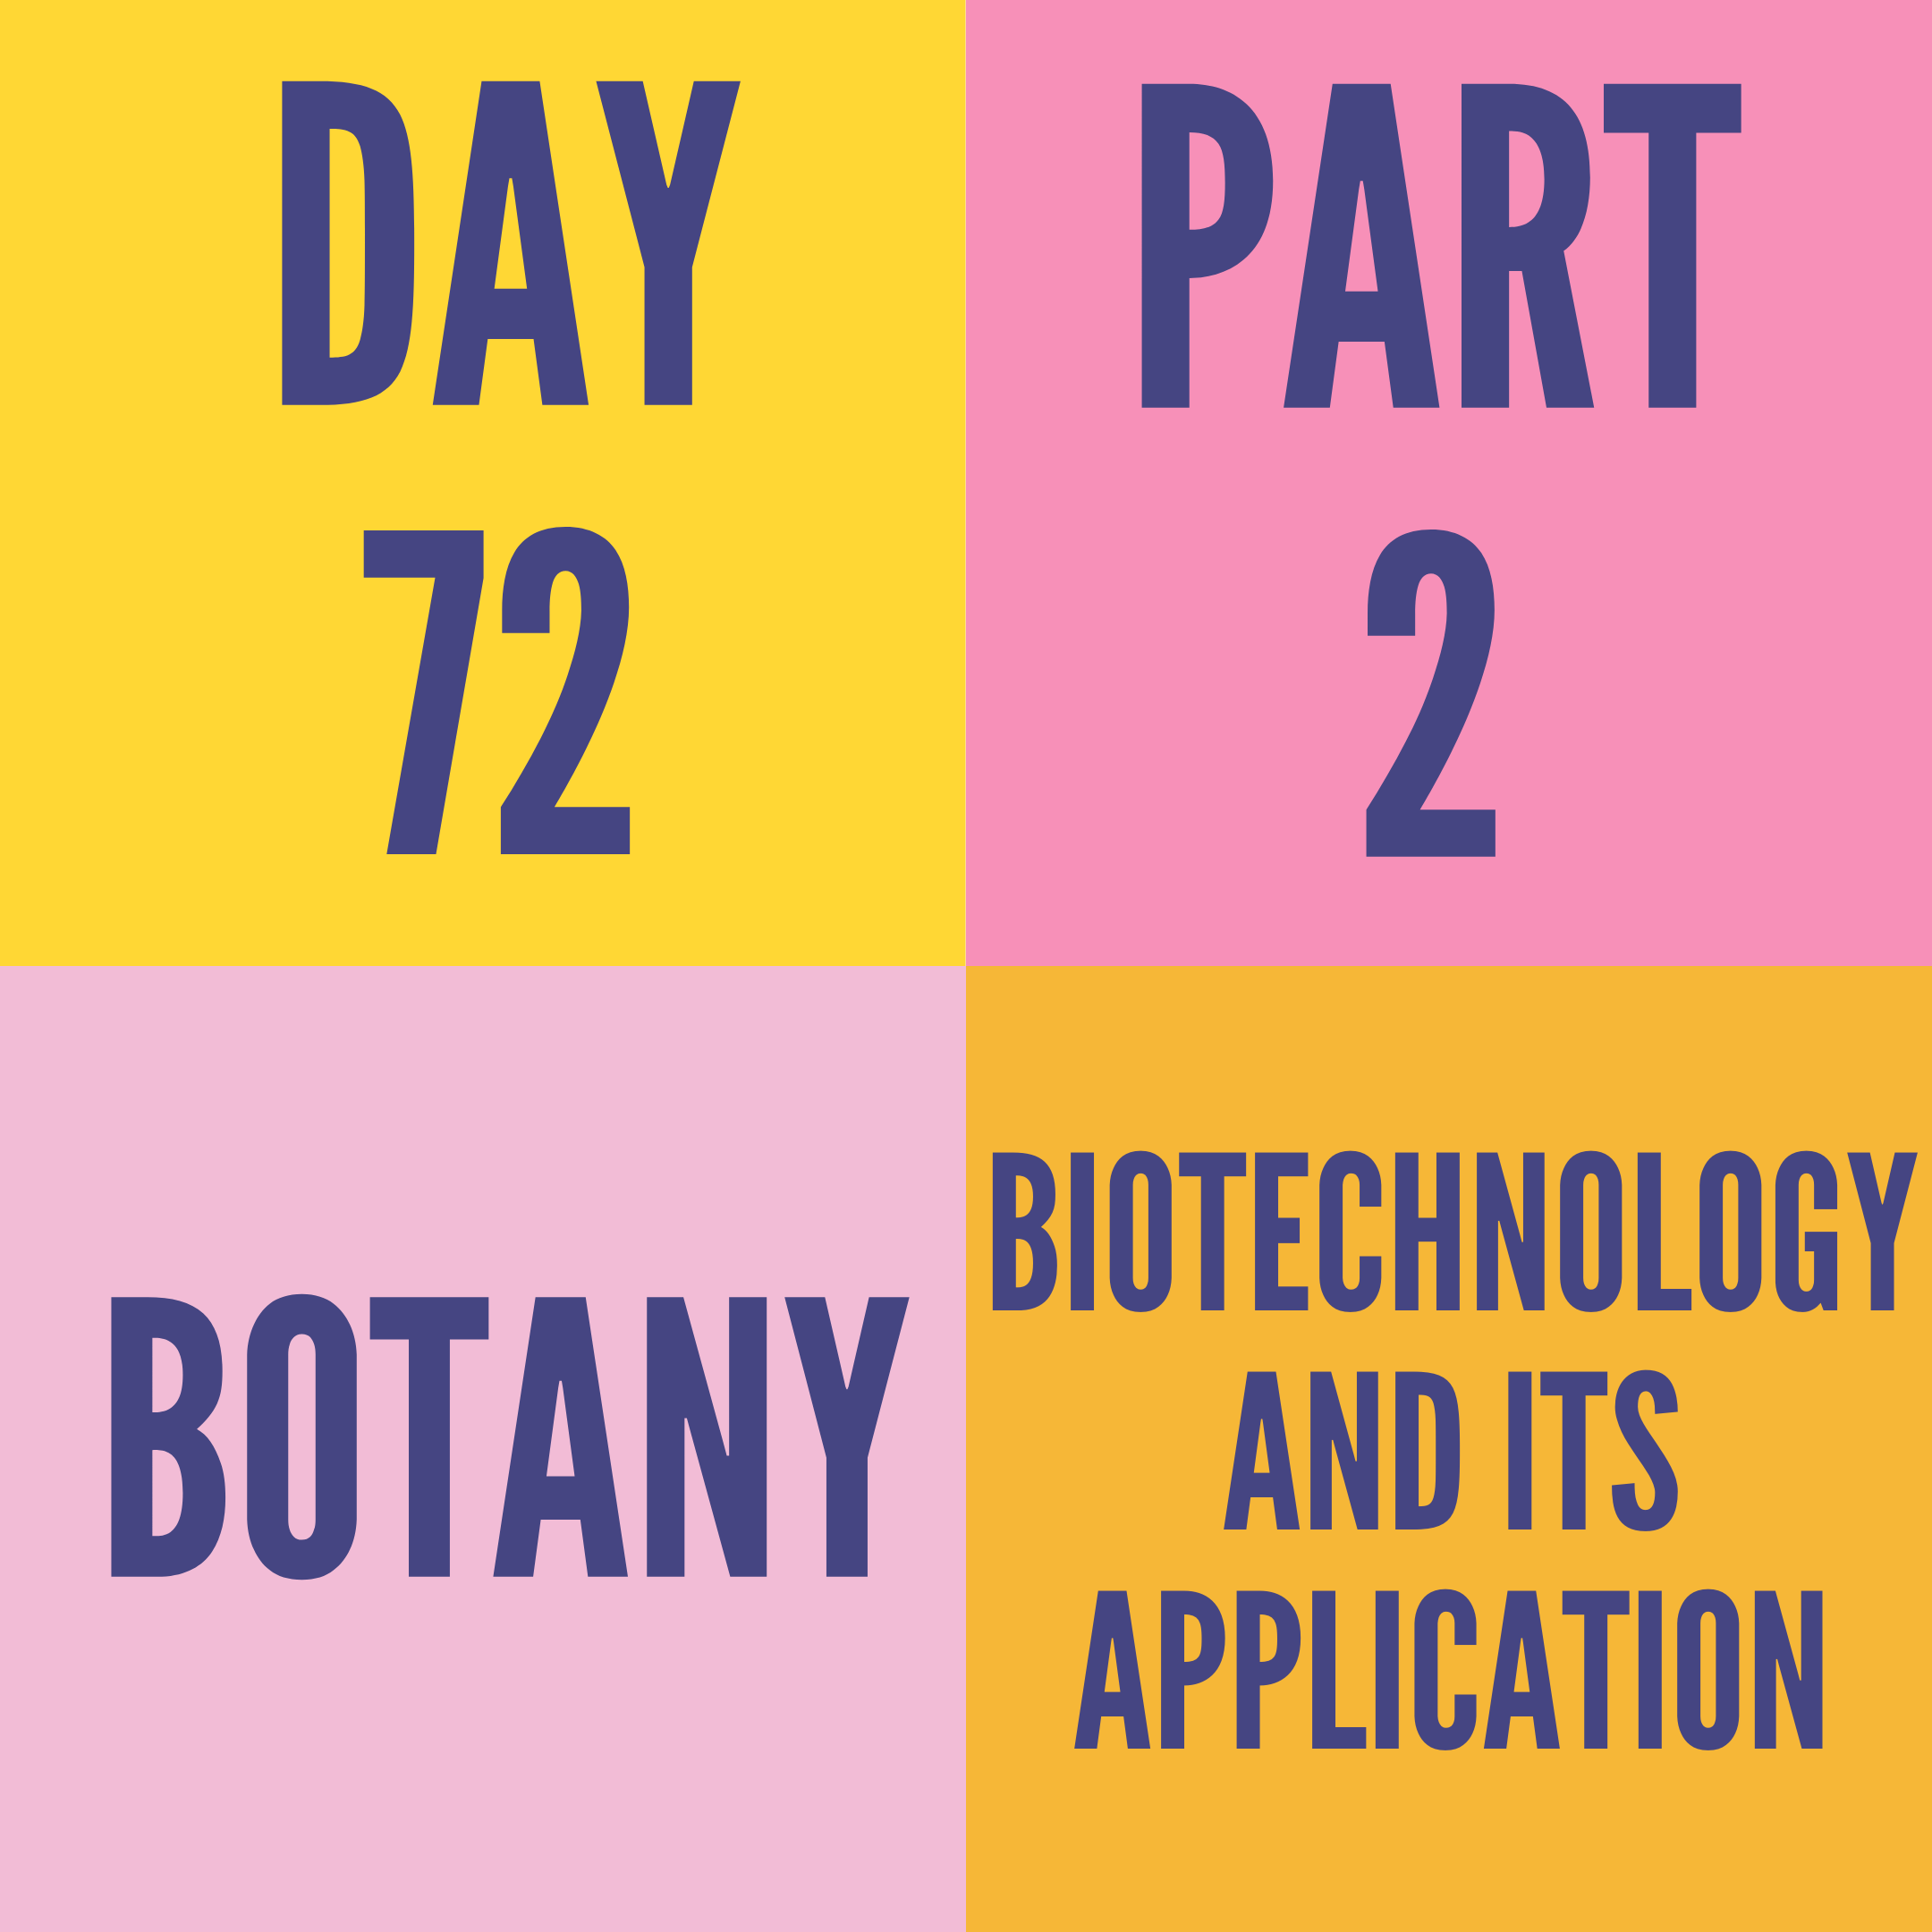 DAY-72 PART-2 BIOTECHNOLOGY AND ITS APPLICATION